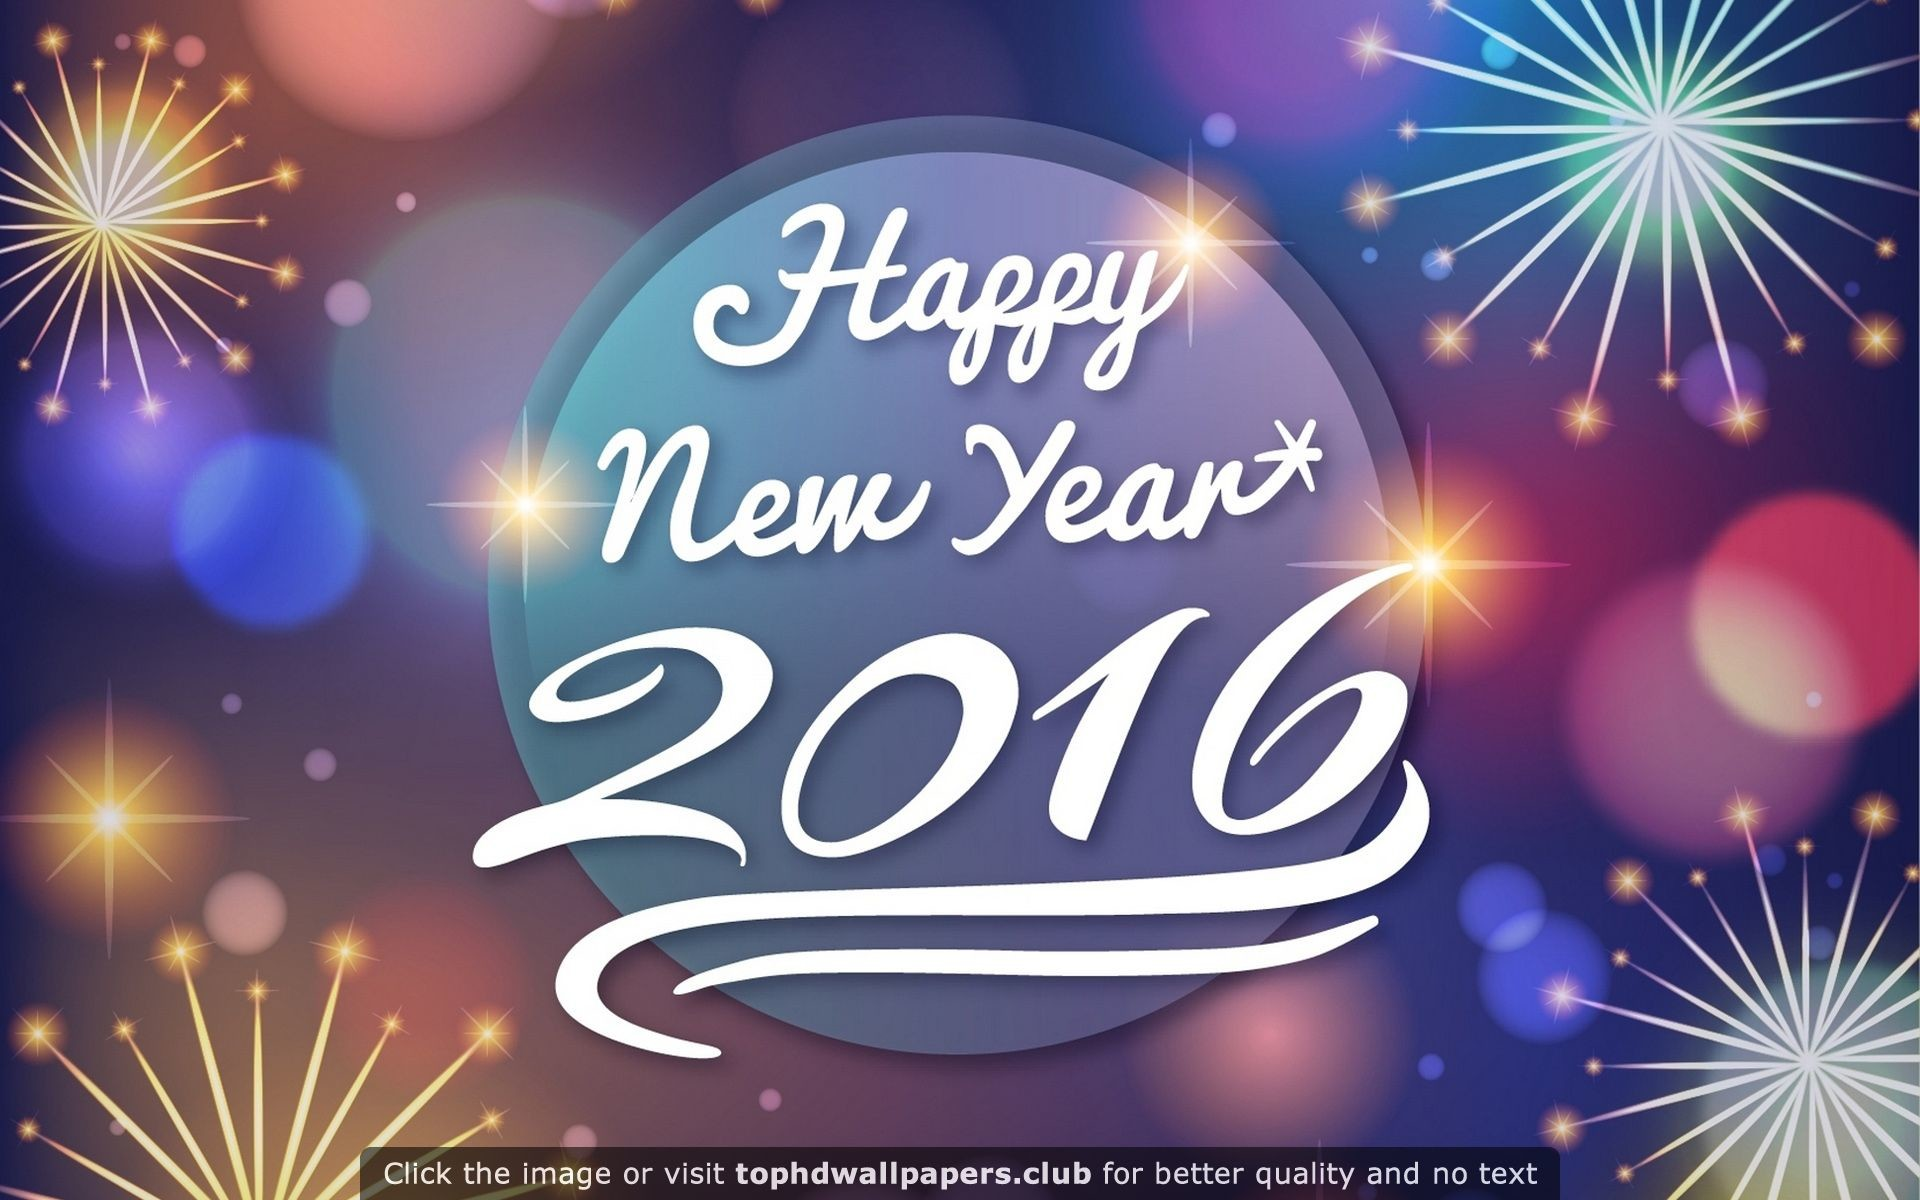 3840x2160 ultra hd new year wallpapers